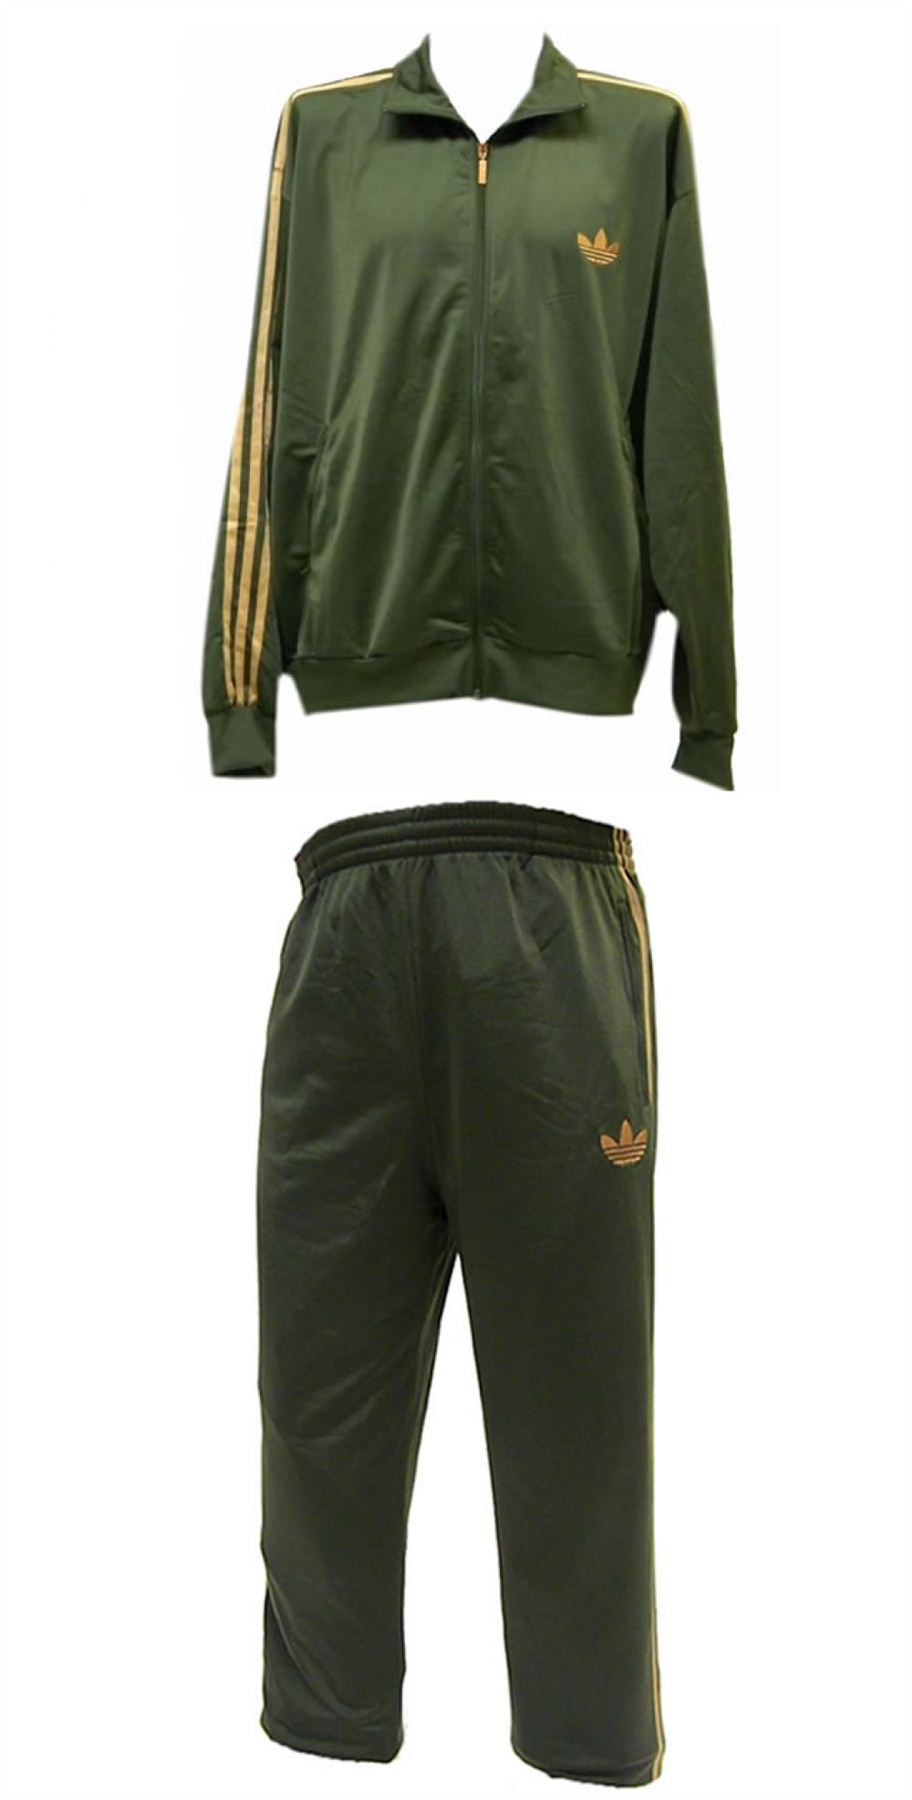 Adidas Mens Full Tracksuit Sports Suit Jogging Training ...  |Athletic Tracksuits